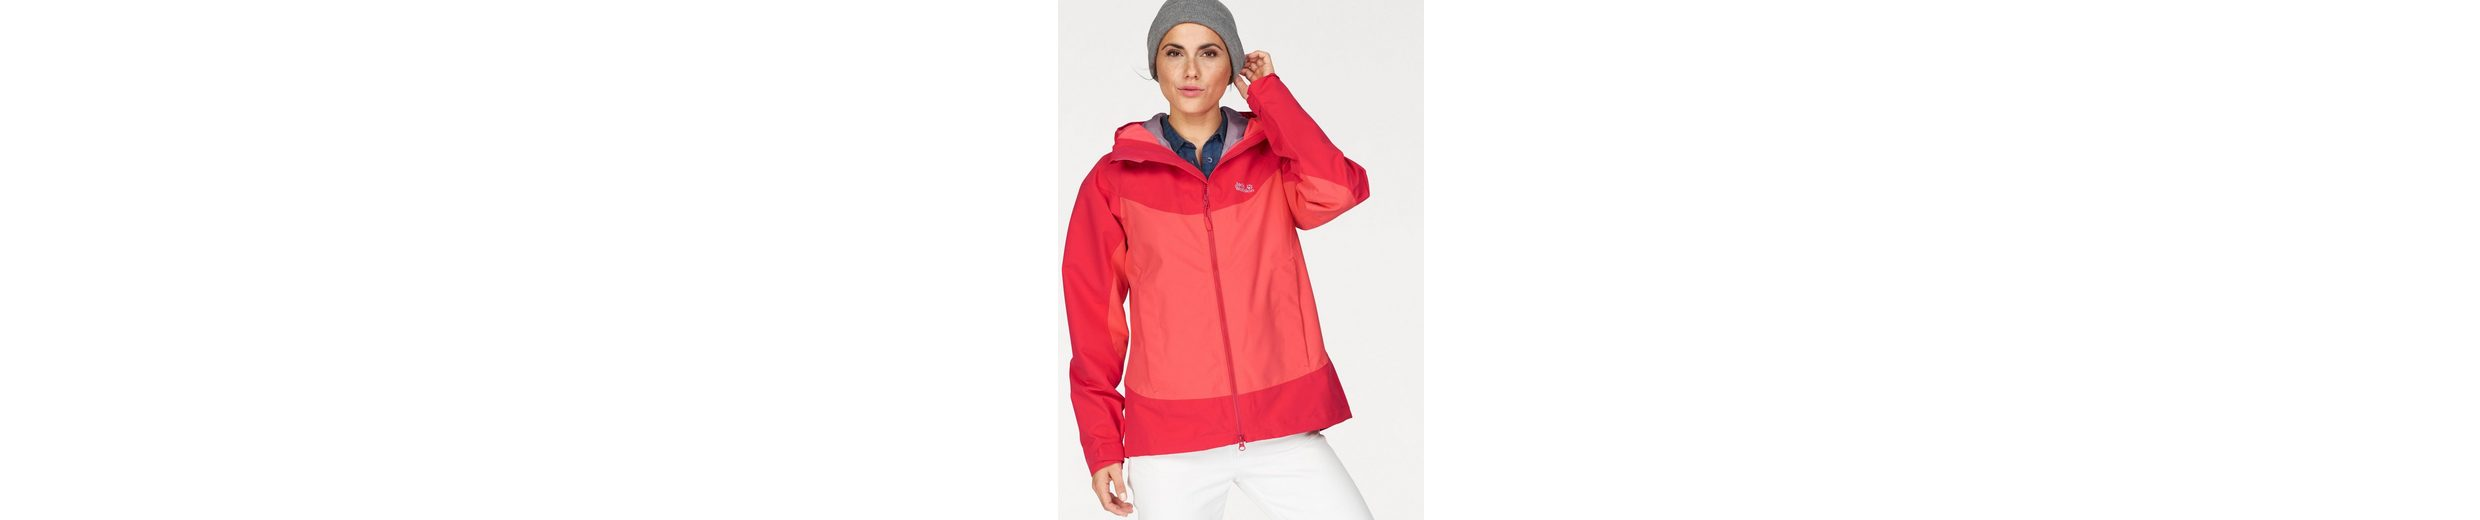 Jack Wolfskin Funktionsjacke NORTH RIDGE, aus der 3in1-System Short-Serie